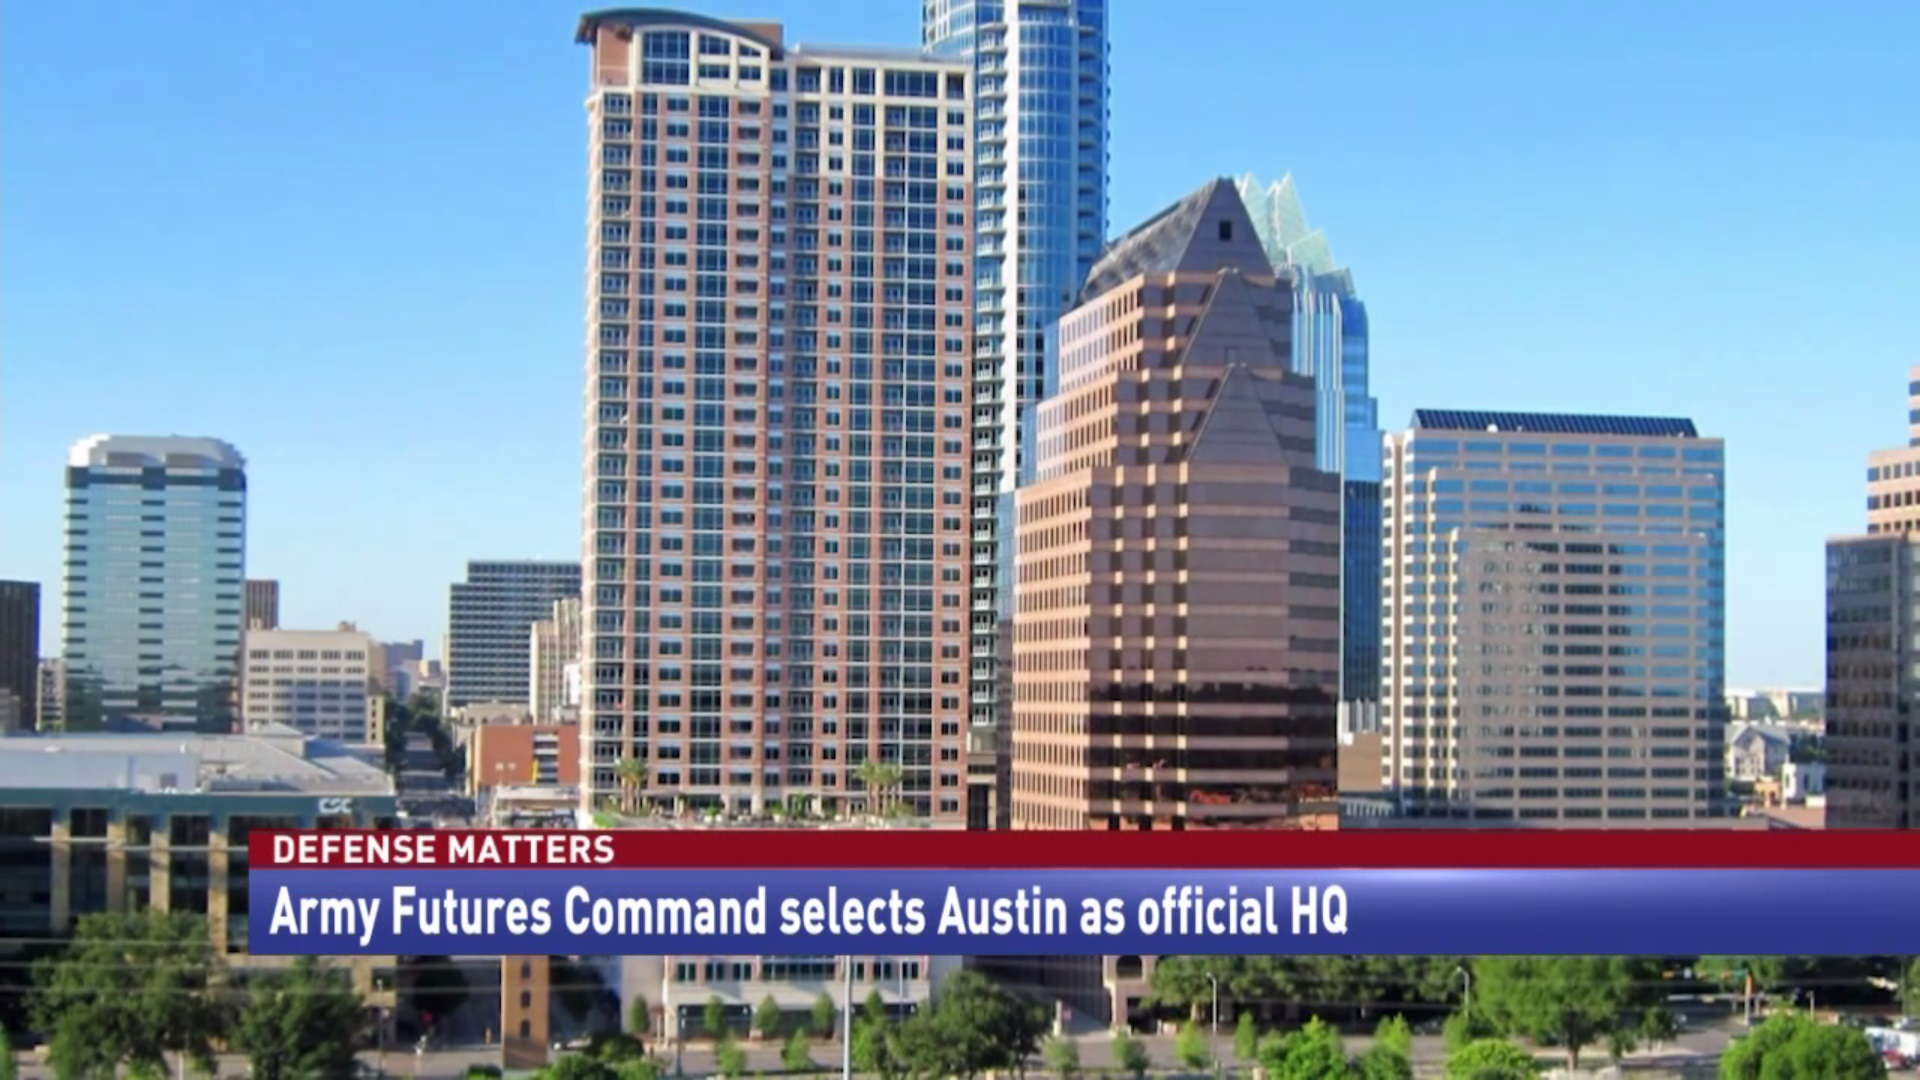 Army Futures Command selects Austin as official HQ